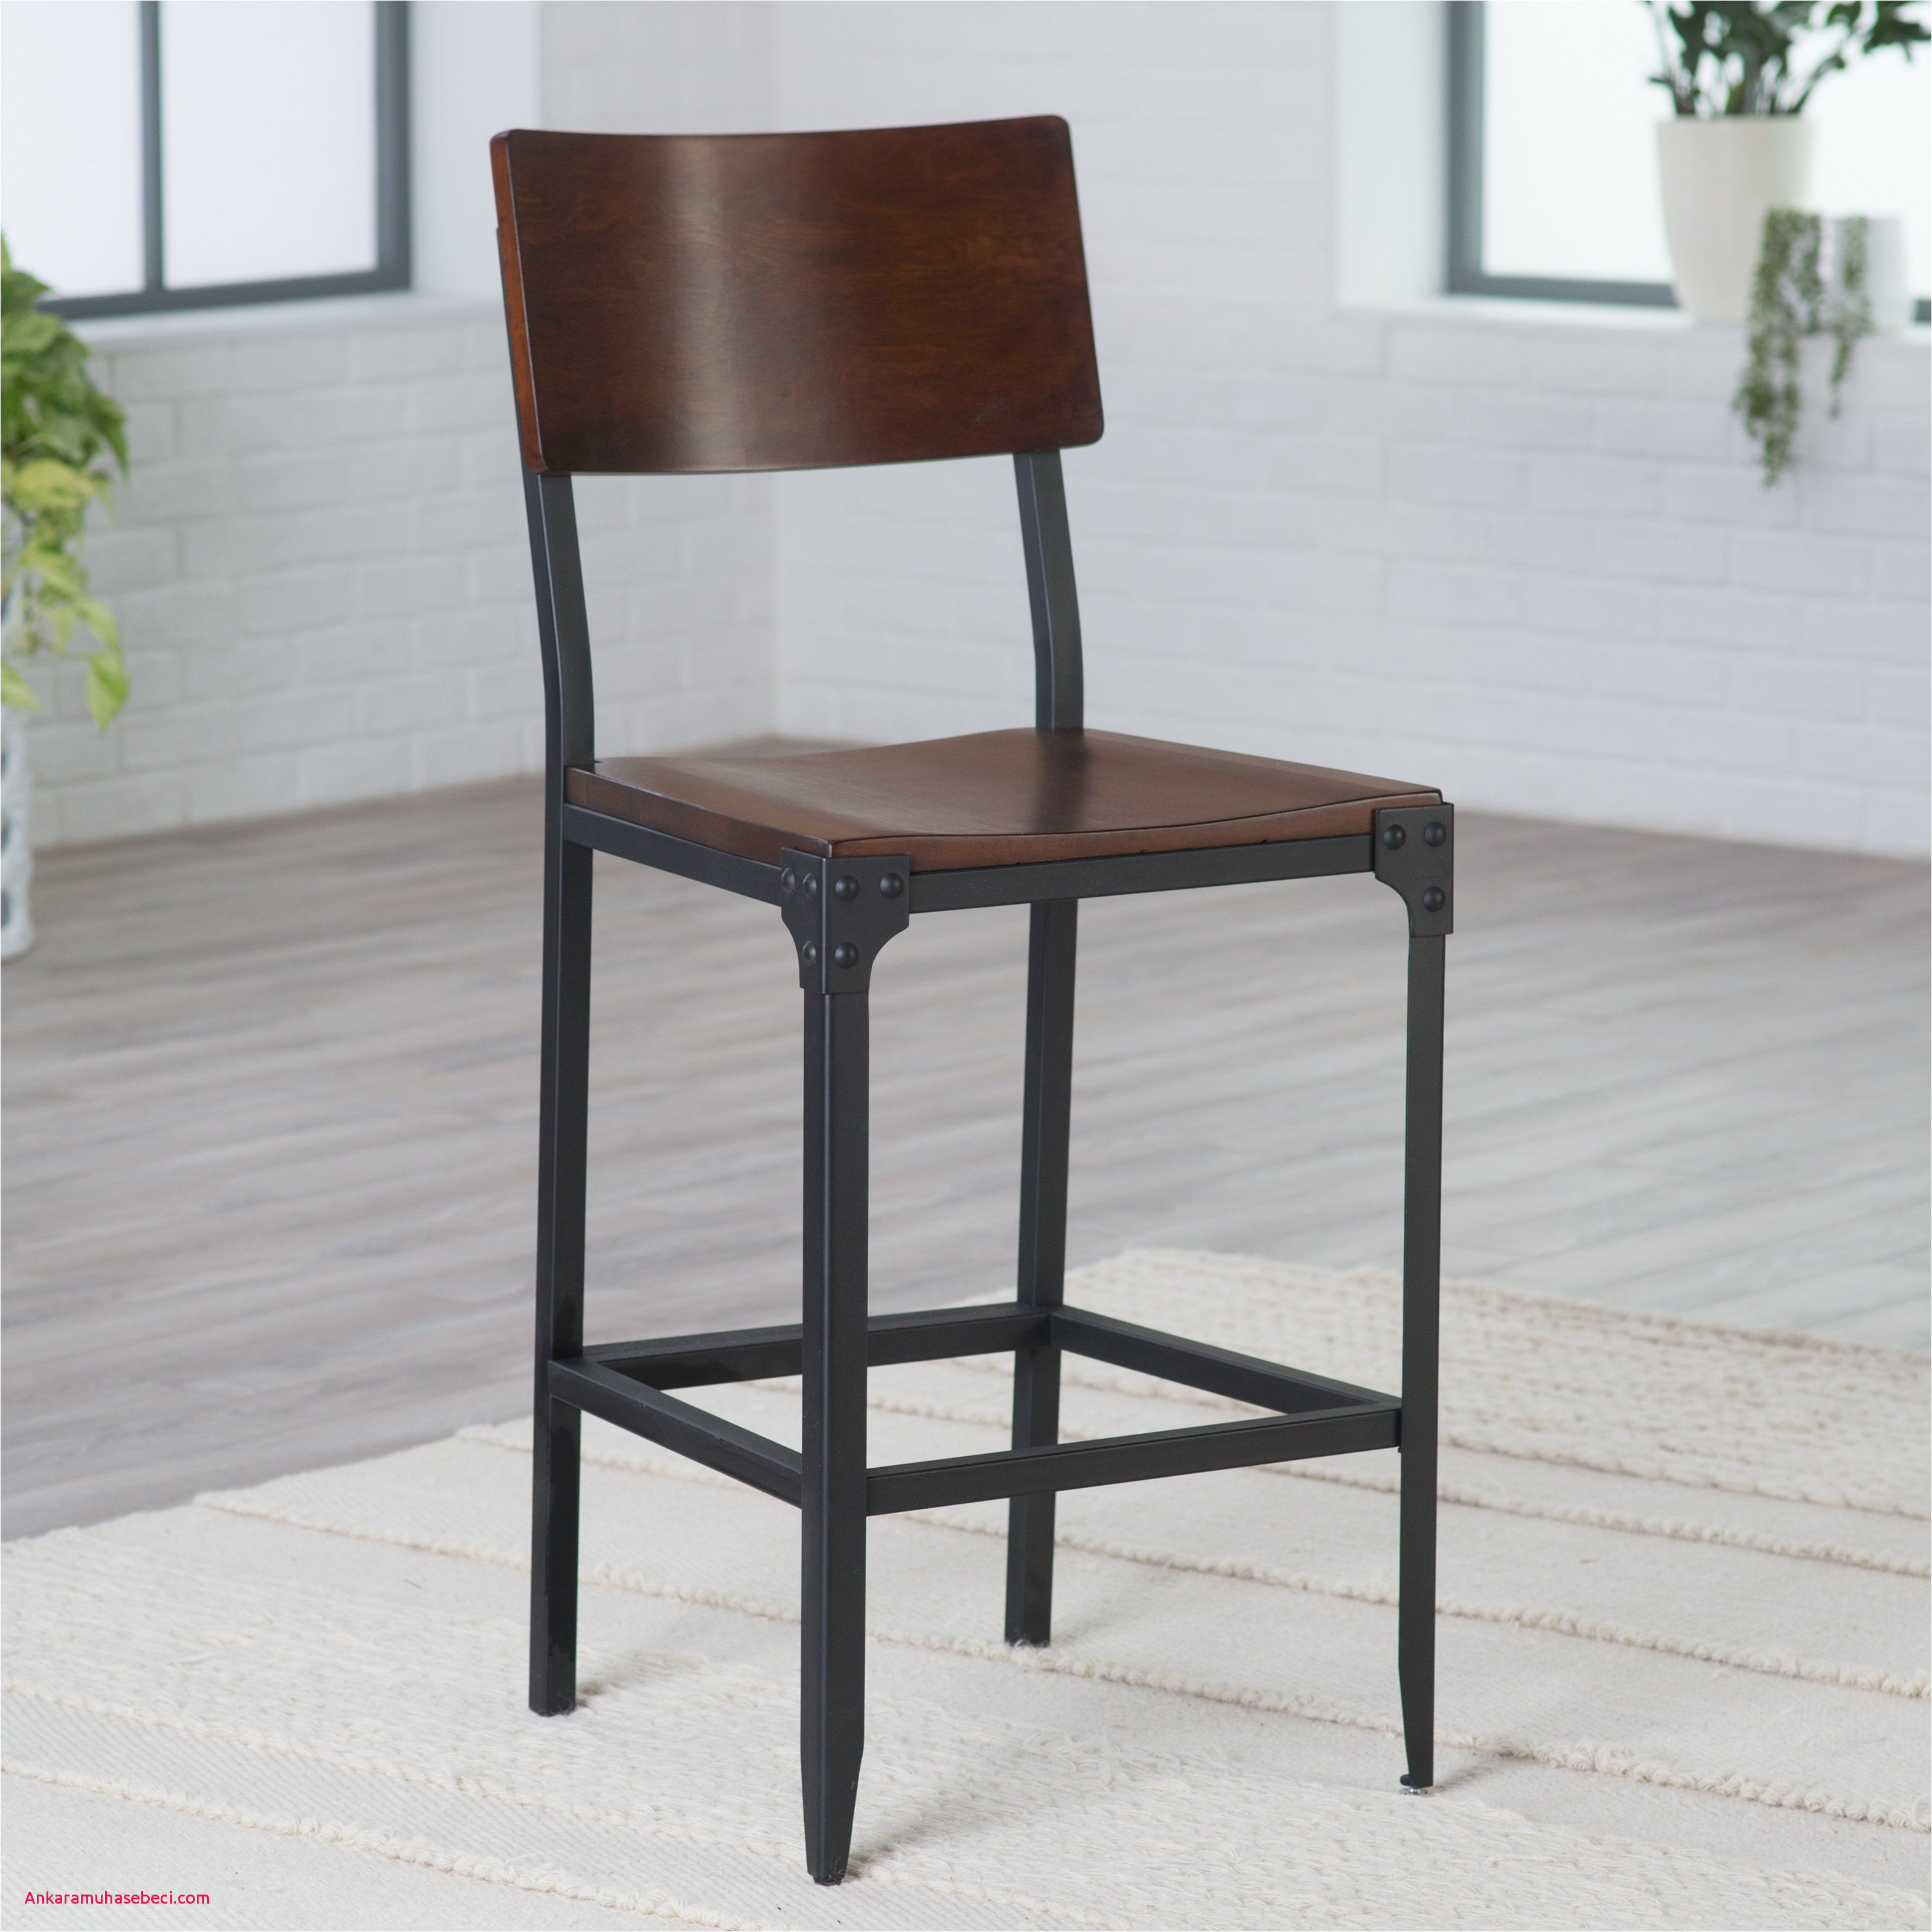 belham living trenton wood and metal counter stool say cheers to the belham